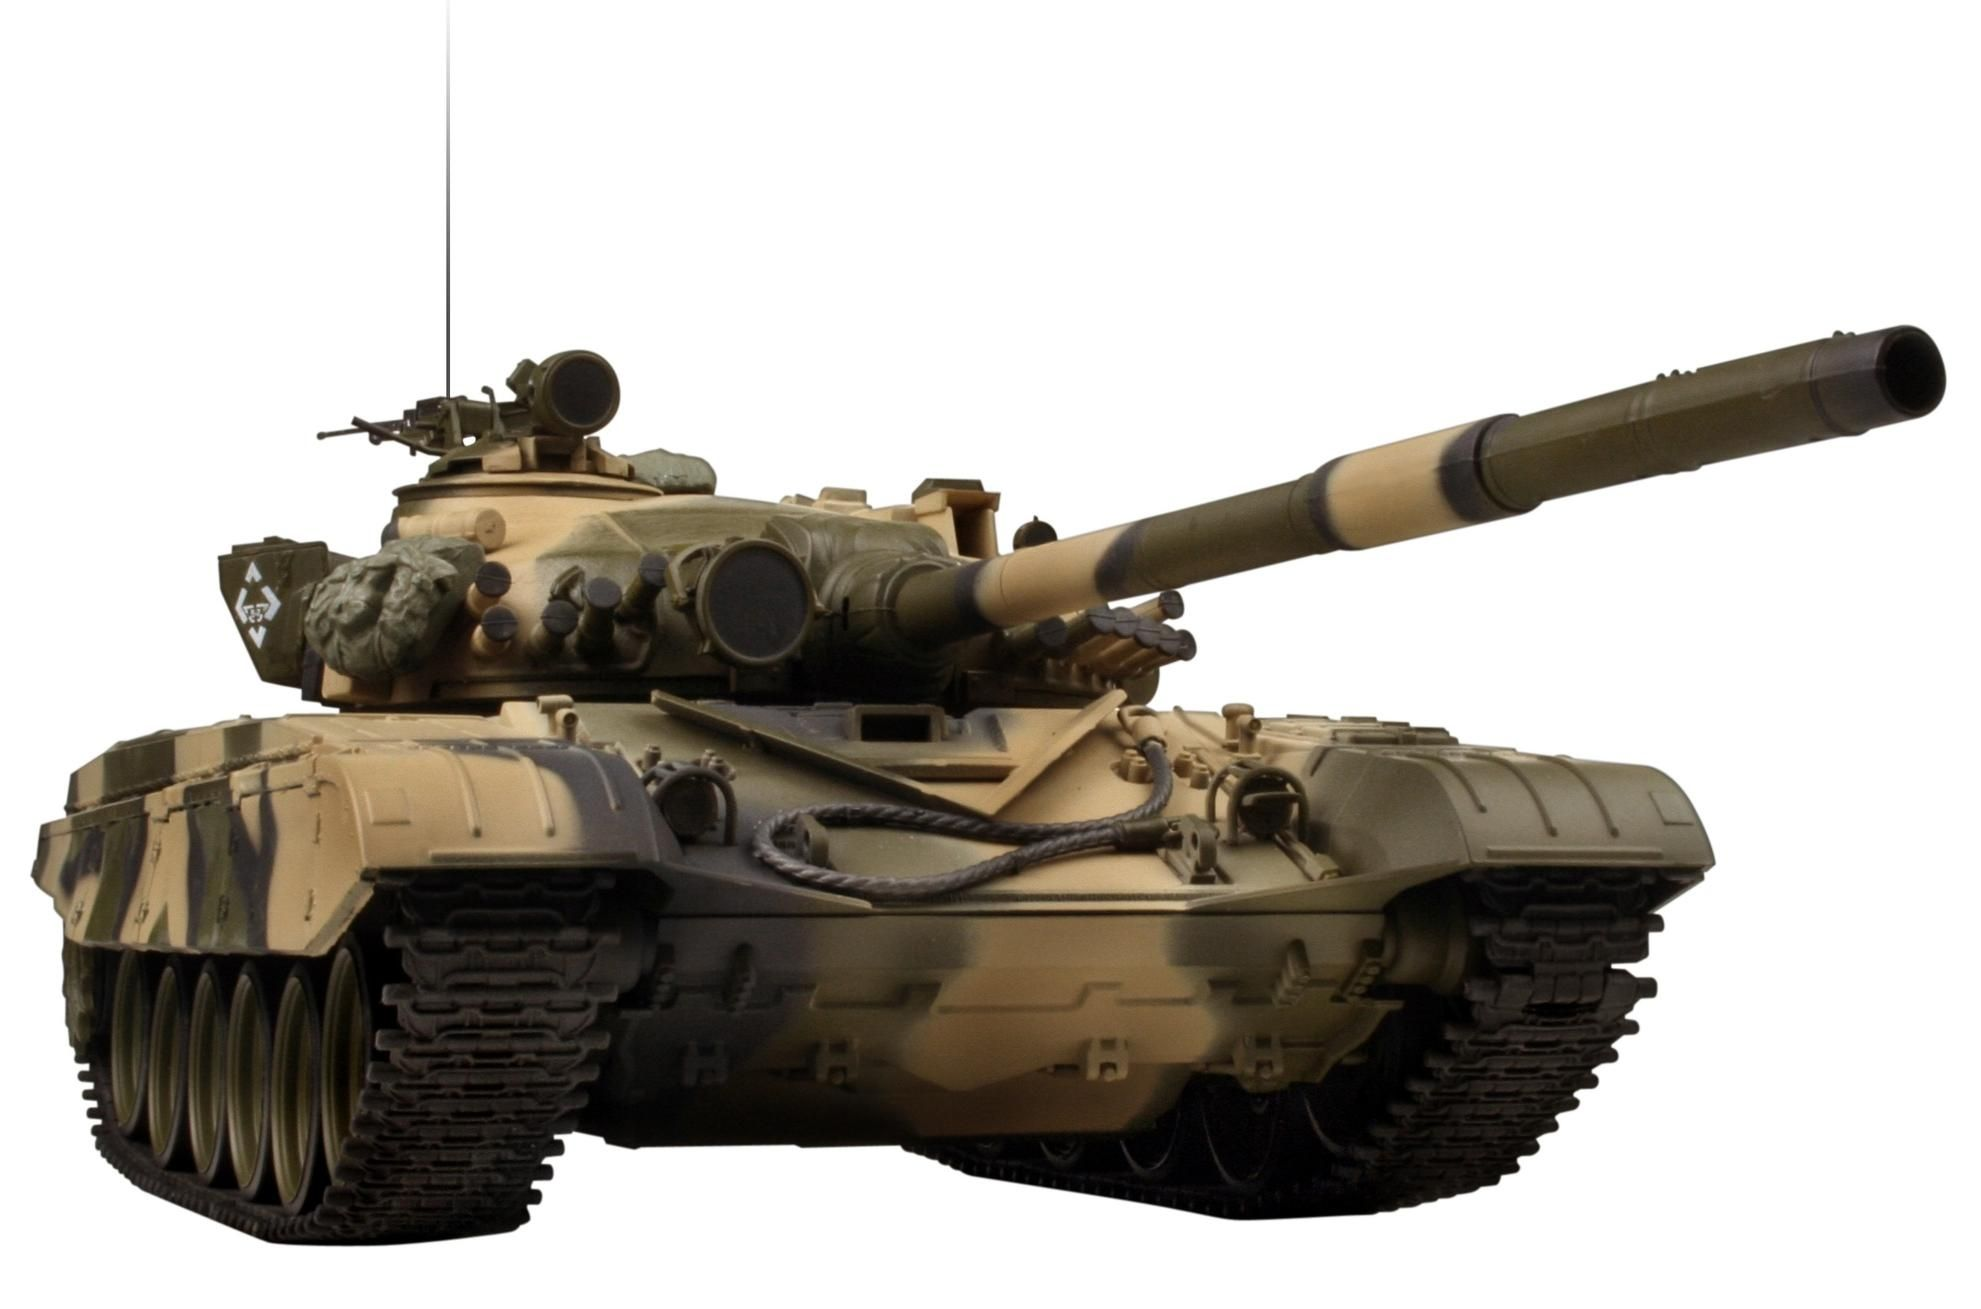 tank dream meaning, dream about tank, tank dream interpretation, seeing in a dream tank